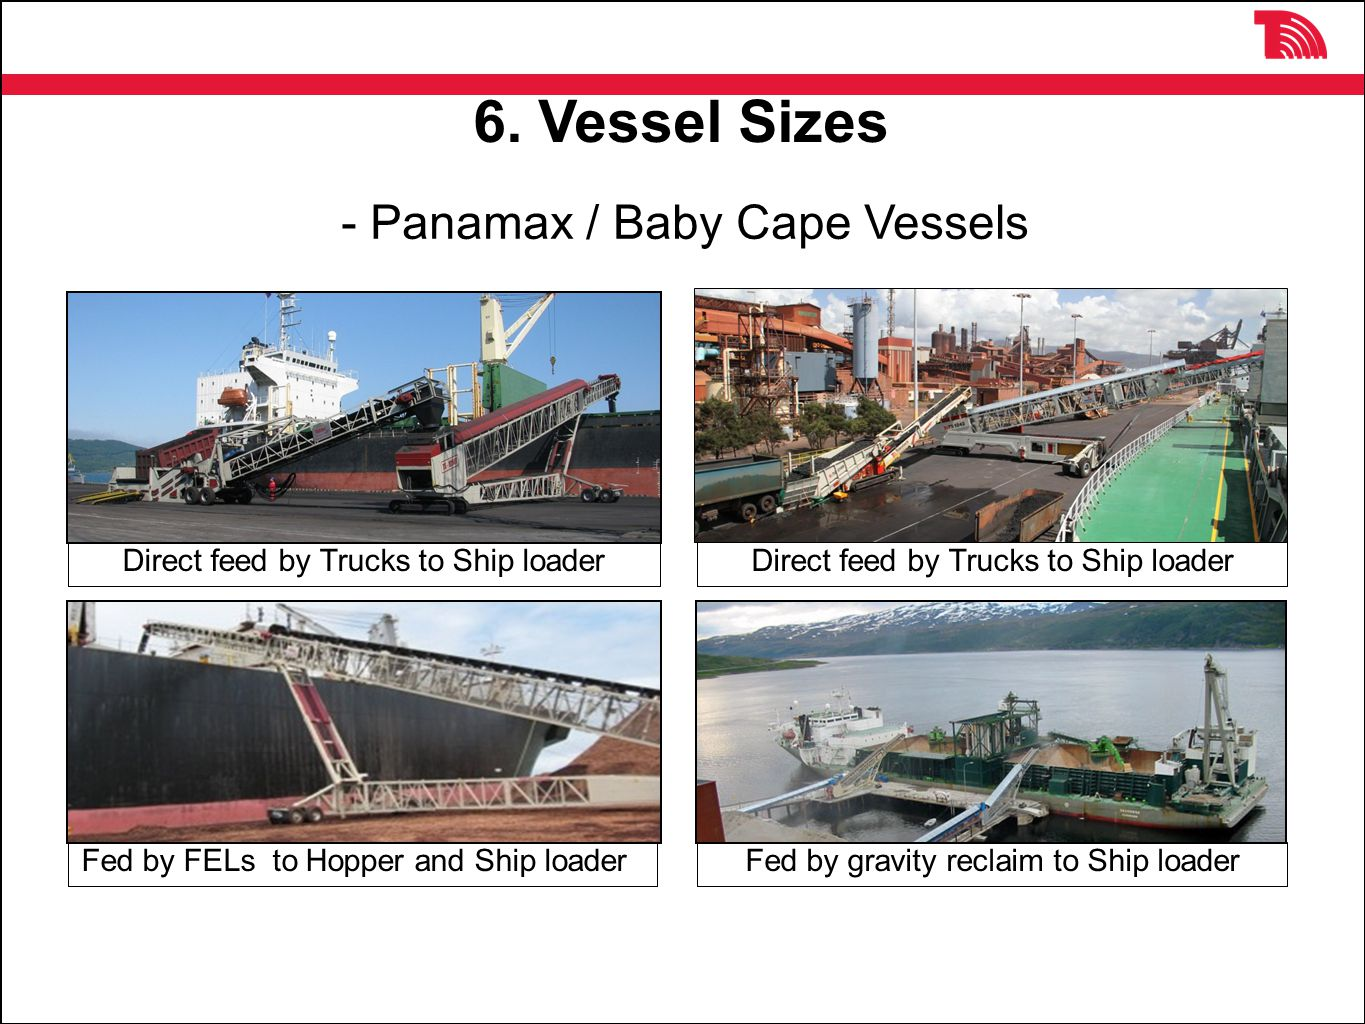 - Panamax / Baby Cape Vessels Direct feed by Trucks to Ship loader Fed by FELs to Hopper and Ship loaderFed by gravity reclaim to Ship loader 6.